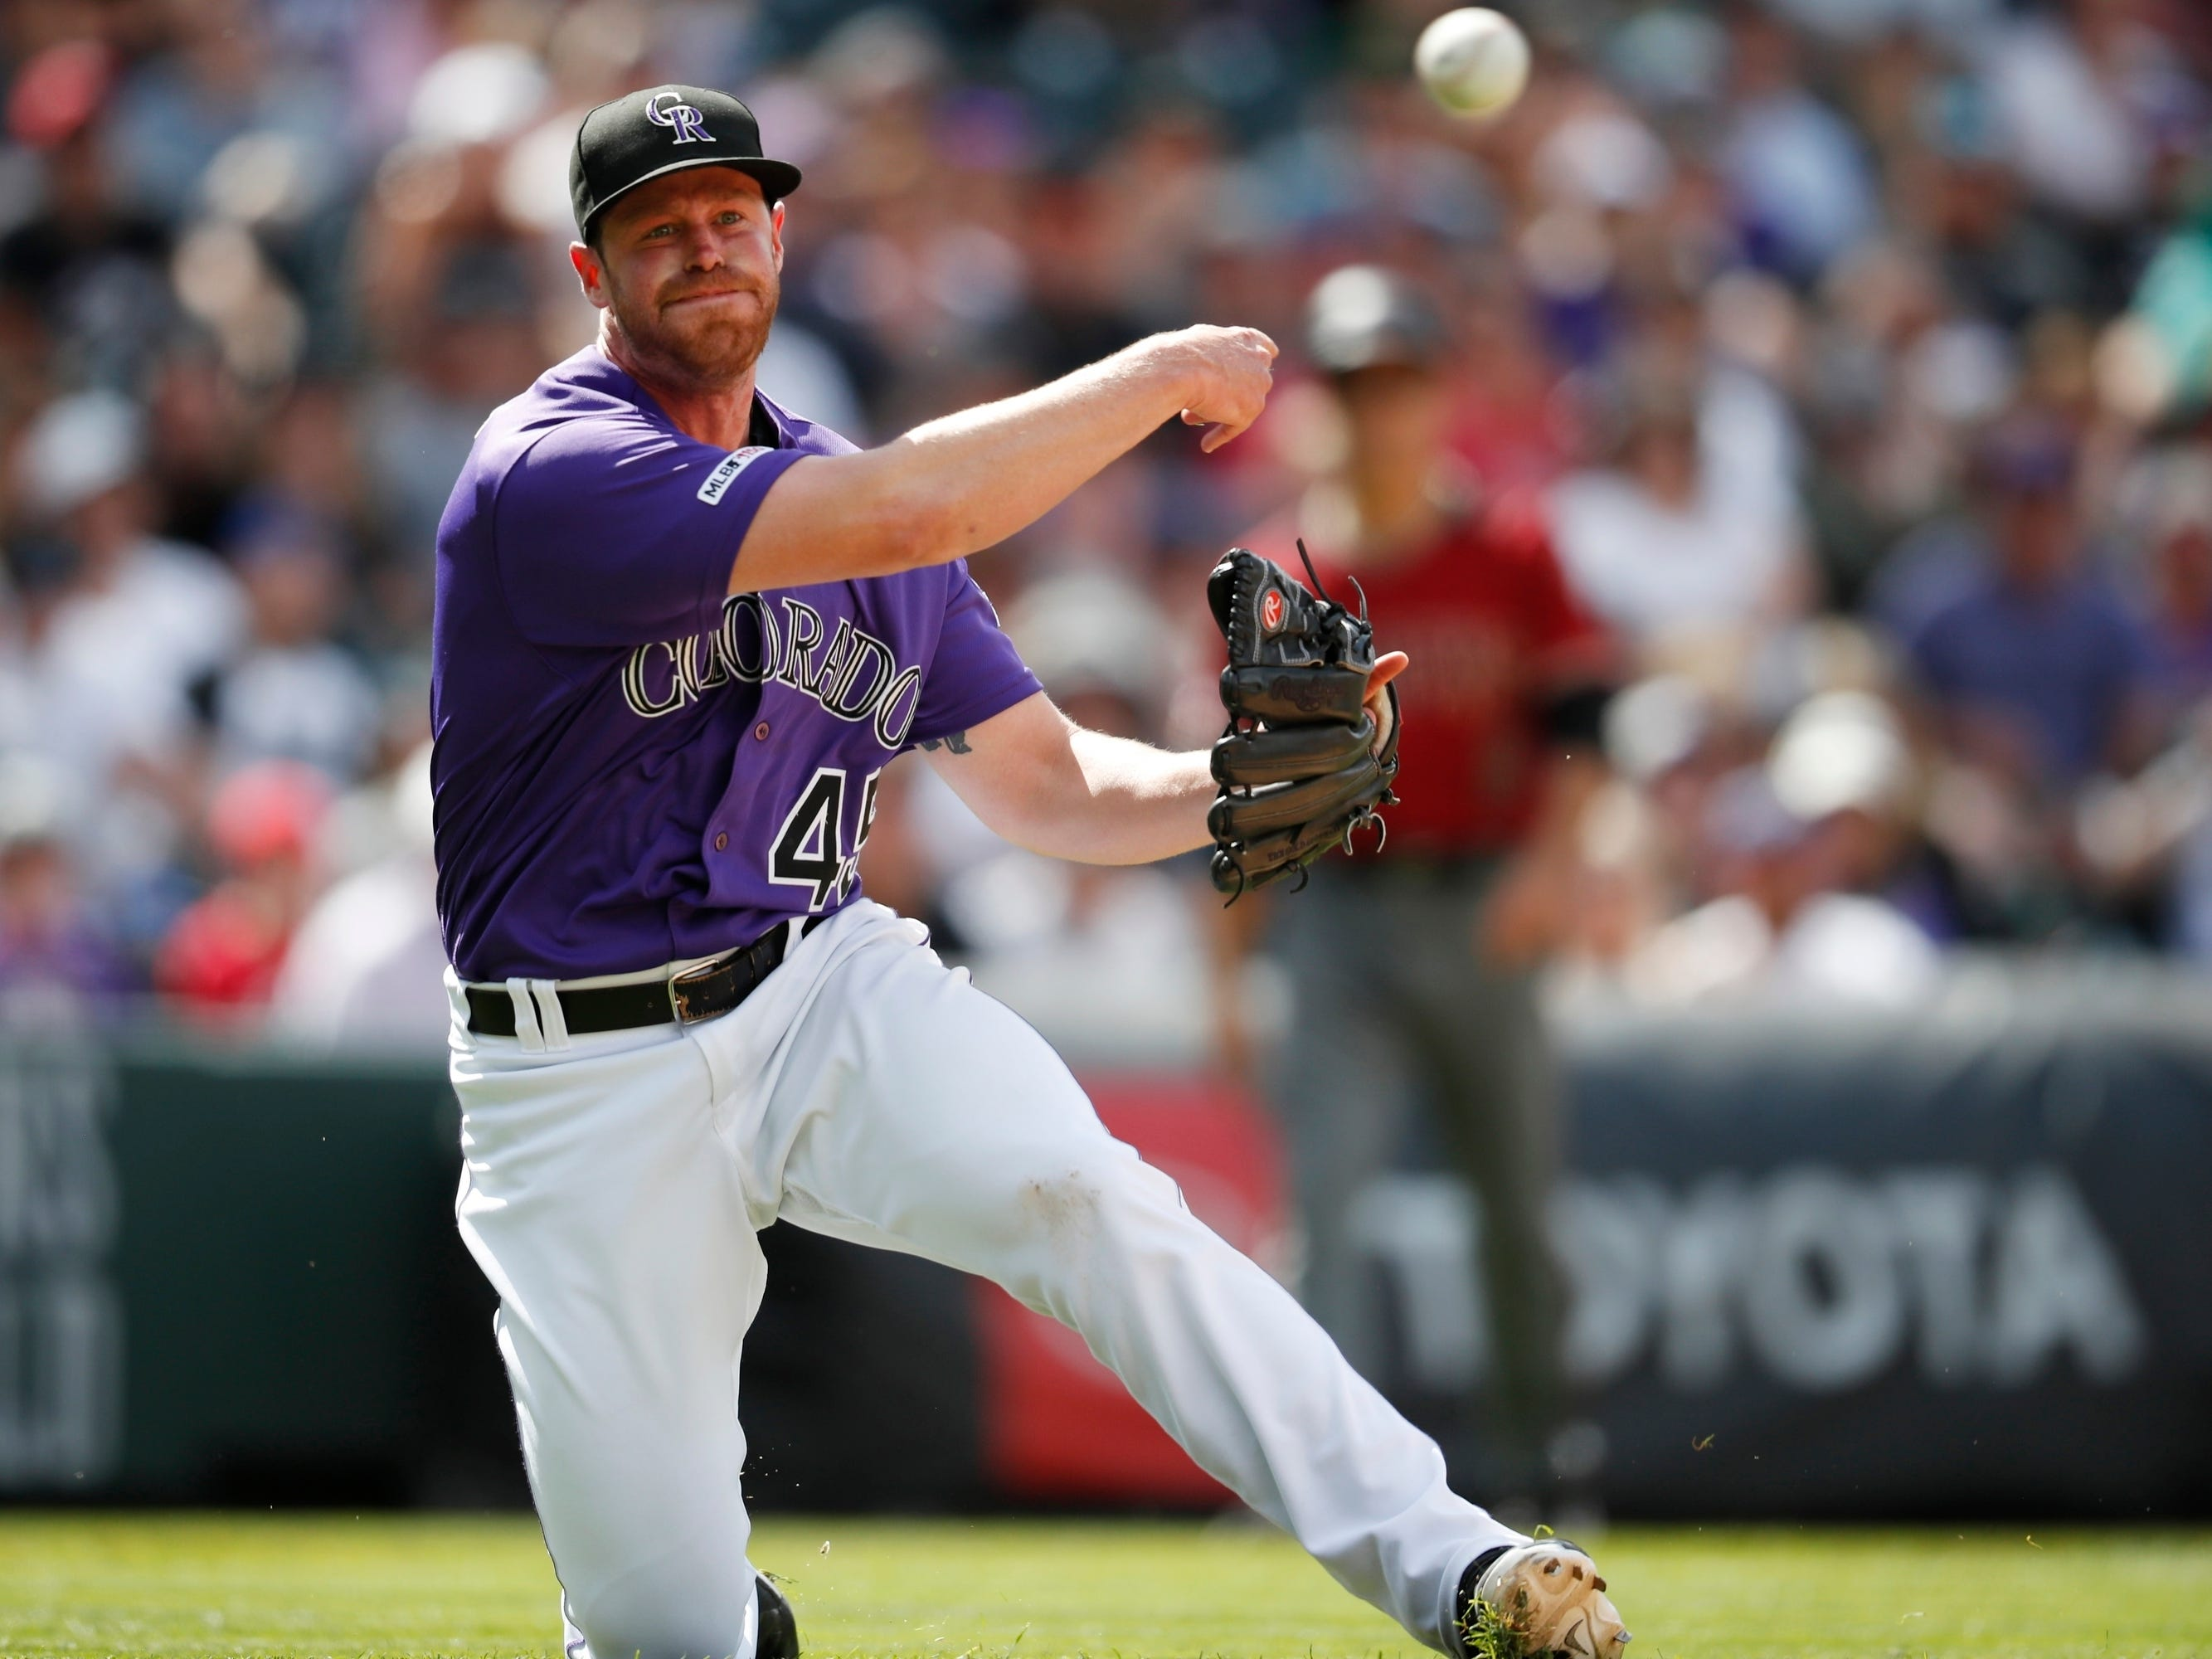 Colorado Rockies relief pitcher Scott Oberg throws to first base to put out Arizona Diamondbacks' John Ryan Murphy in the eighth inning of a baseball game Sunday, May 5, 2019, in Denver. (AP Photo/David Zalubowski)